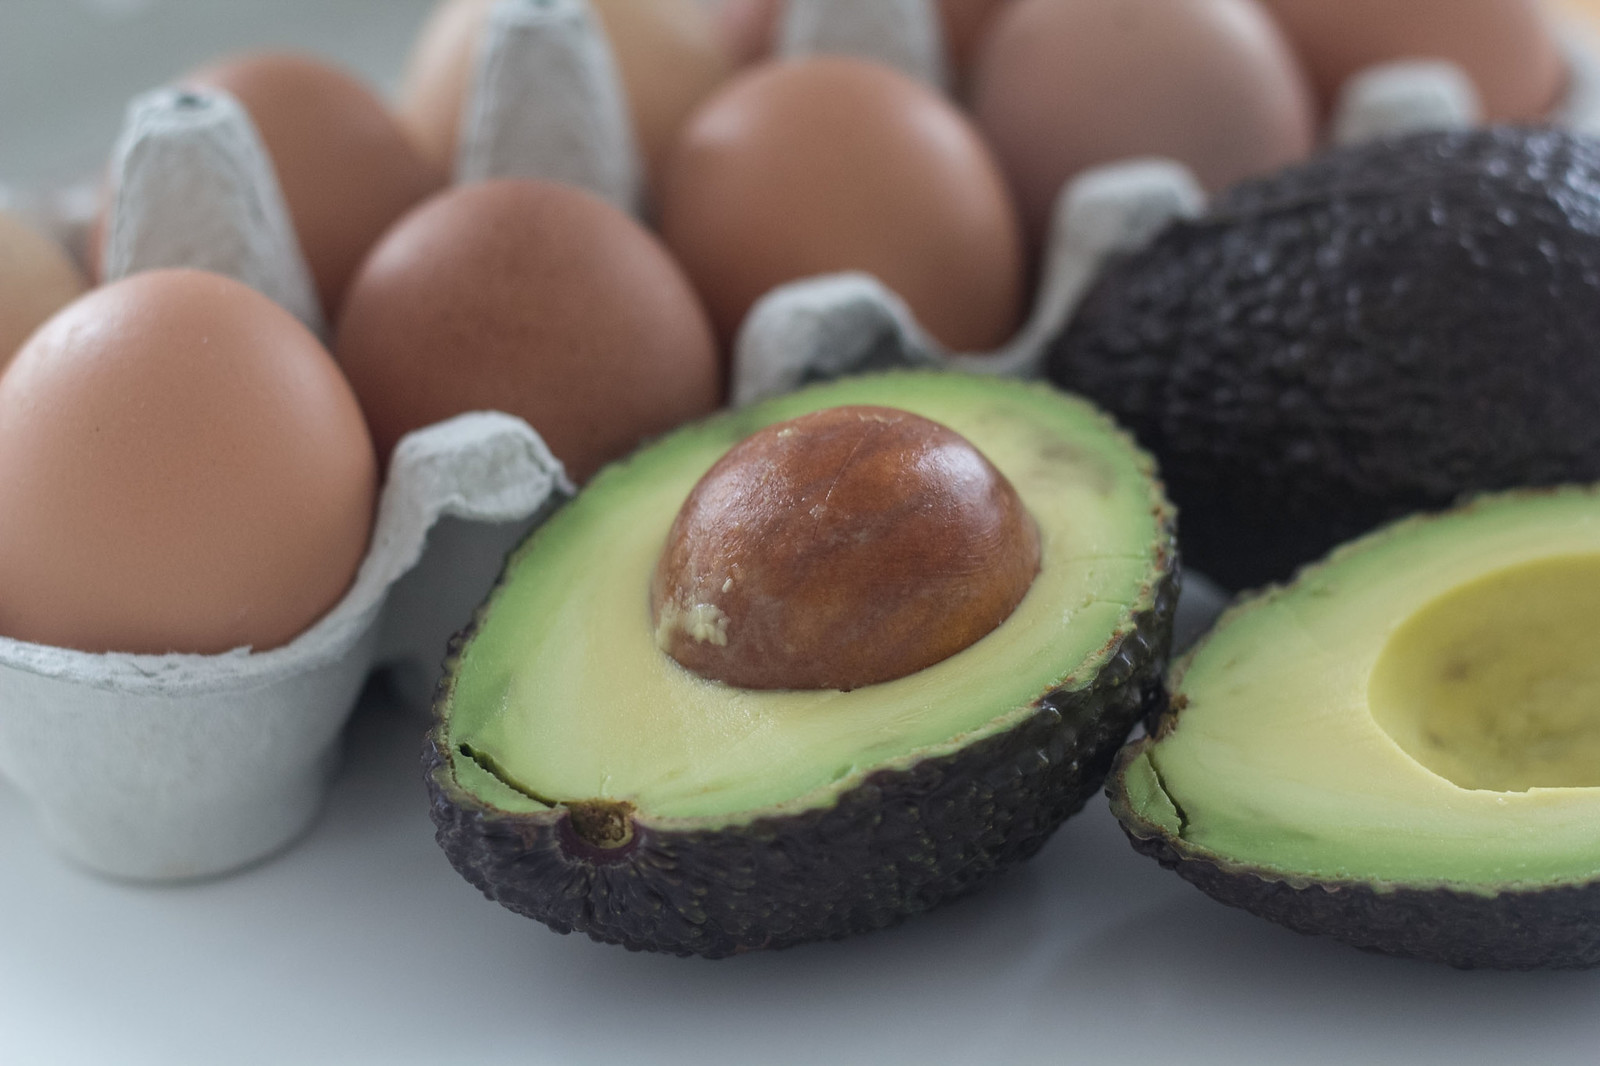 Recipe for Homemade Avocado Baked Egg